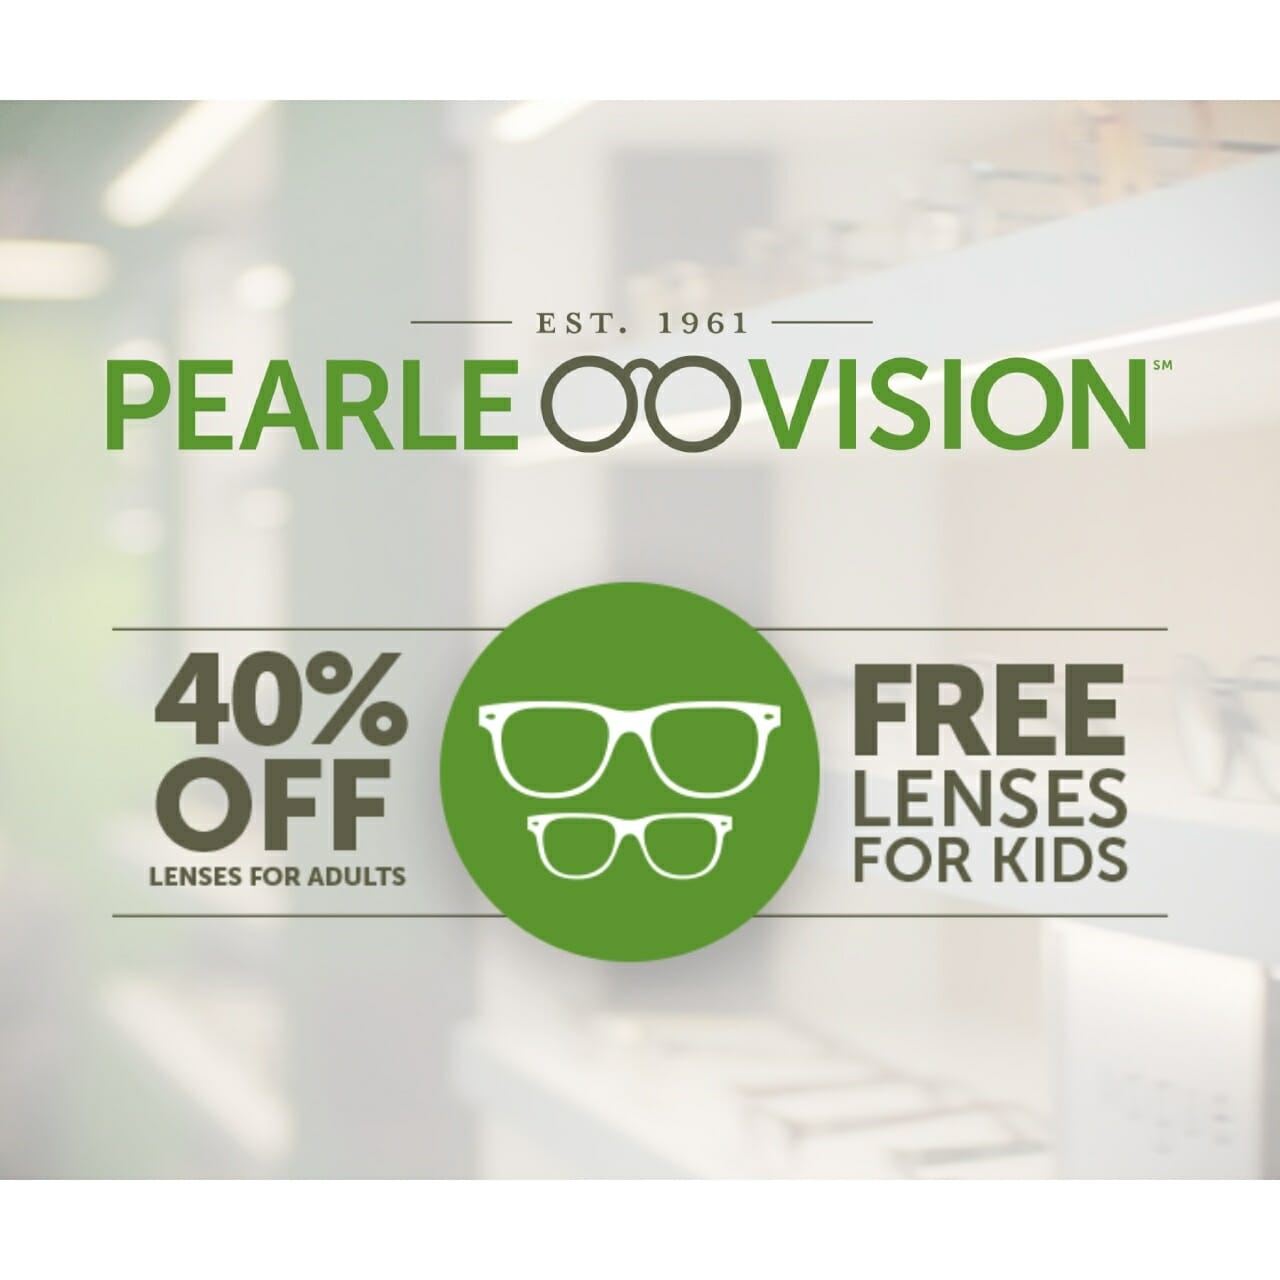 Pearle Vision. 40% off lenses for adults and Free lenses for kids.